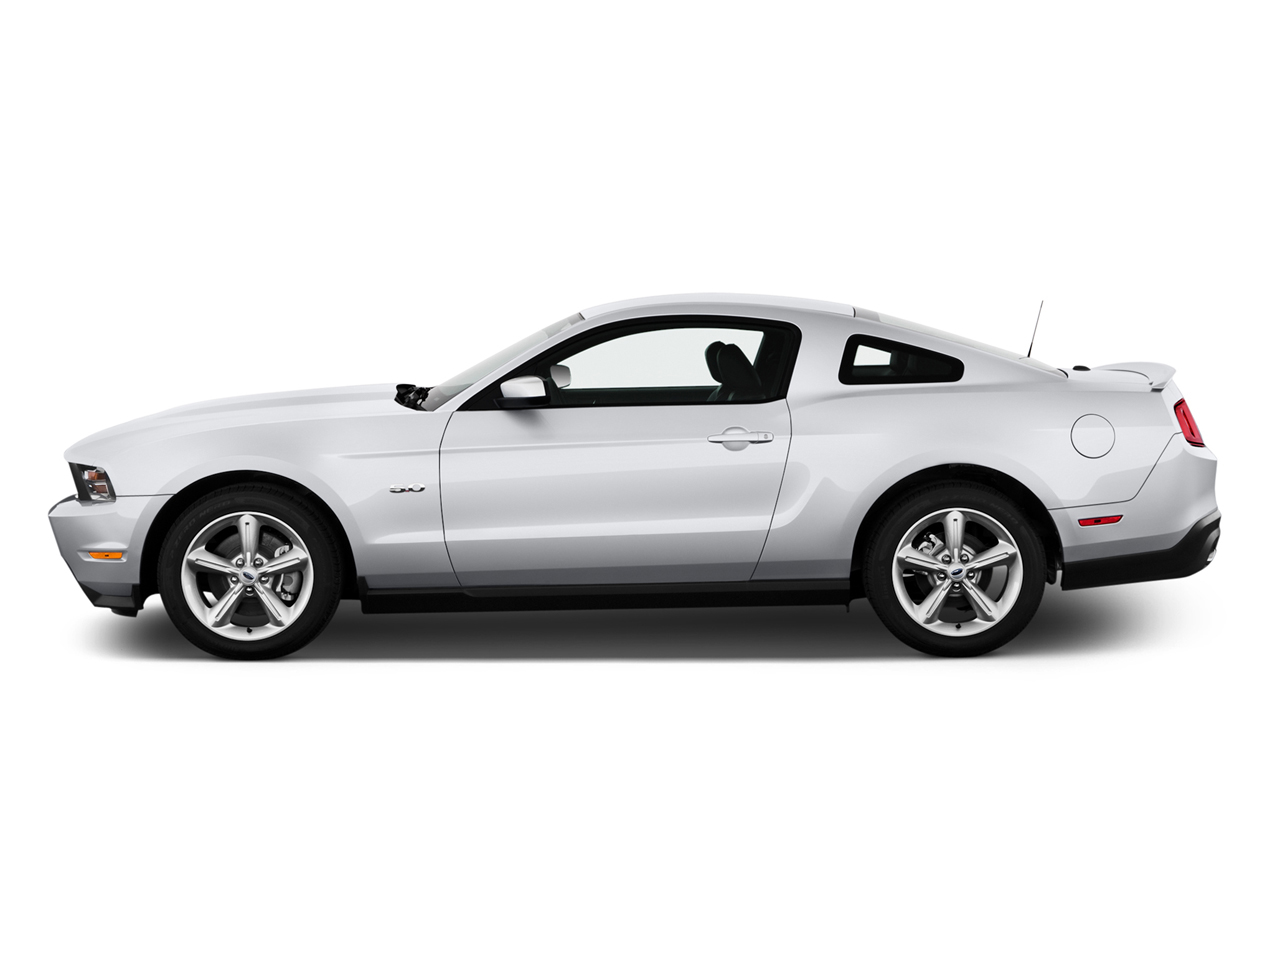 2015 Ford Mustang Gt Premium For Sale 2012 Ford Mustang Review, Ratings, Specs, Prices, and ...